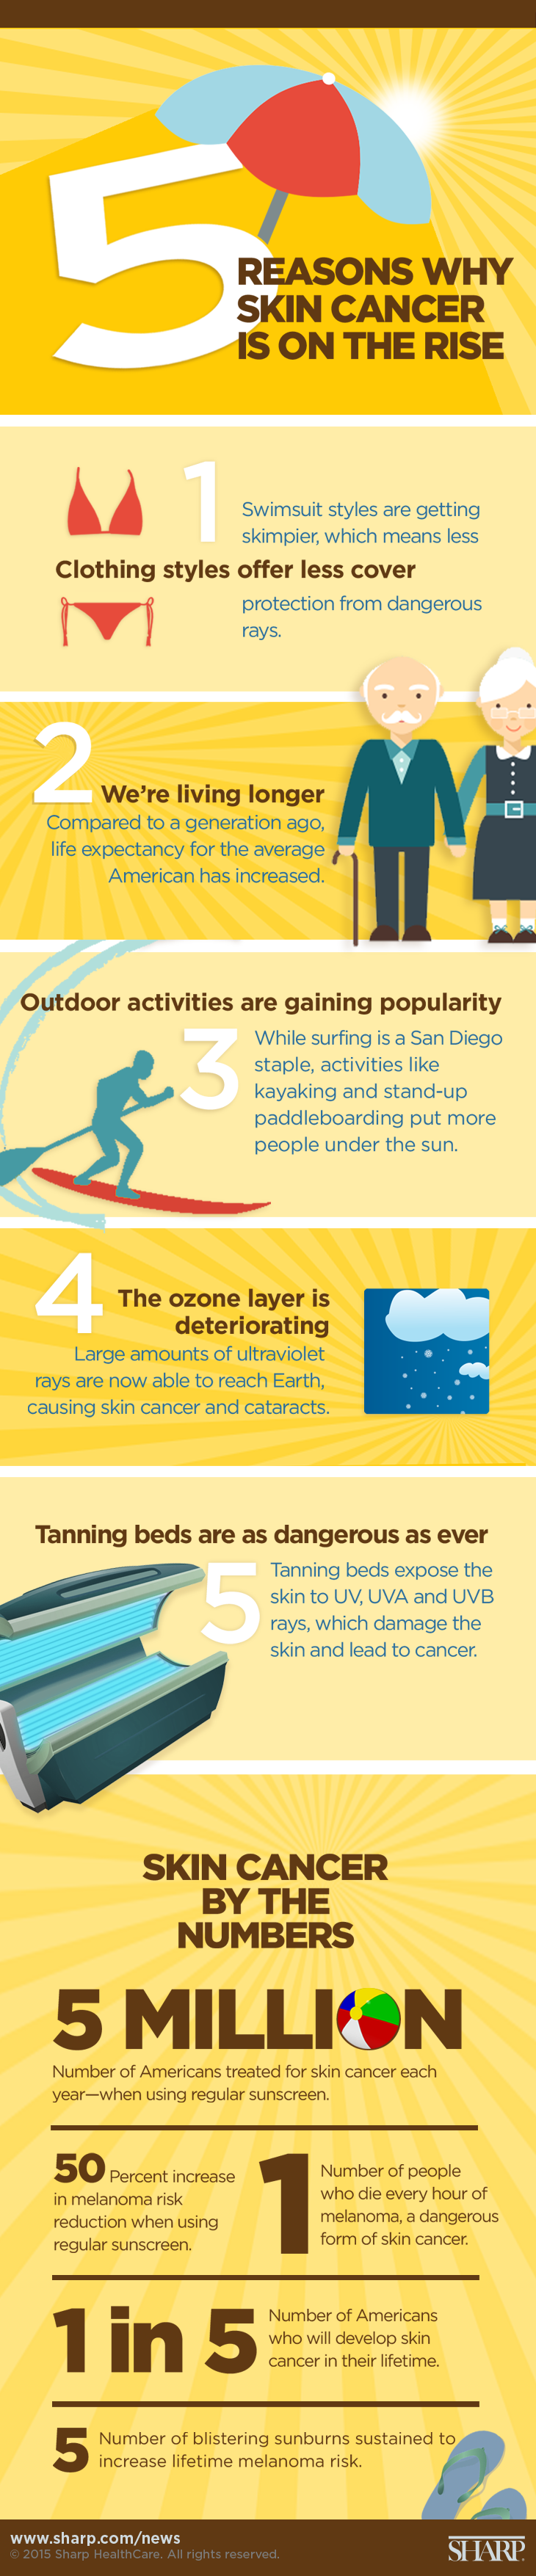 5 reasons why skin cancer is on the rise